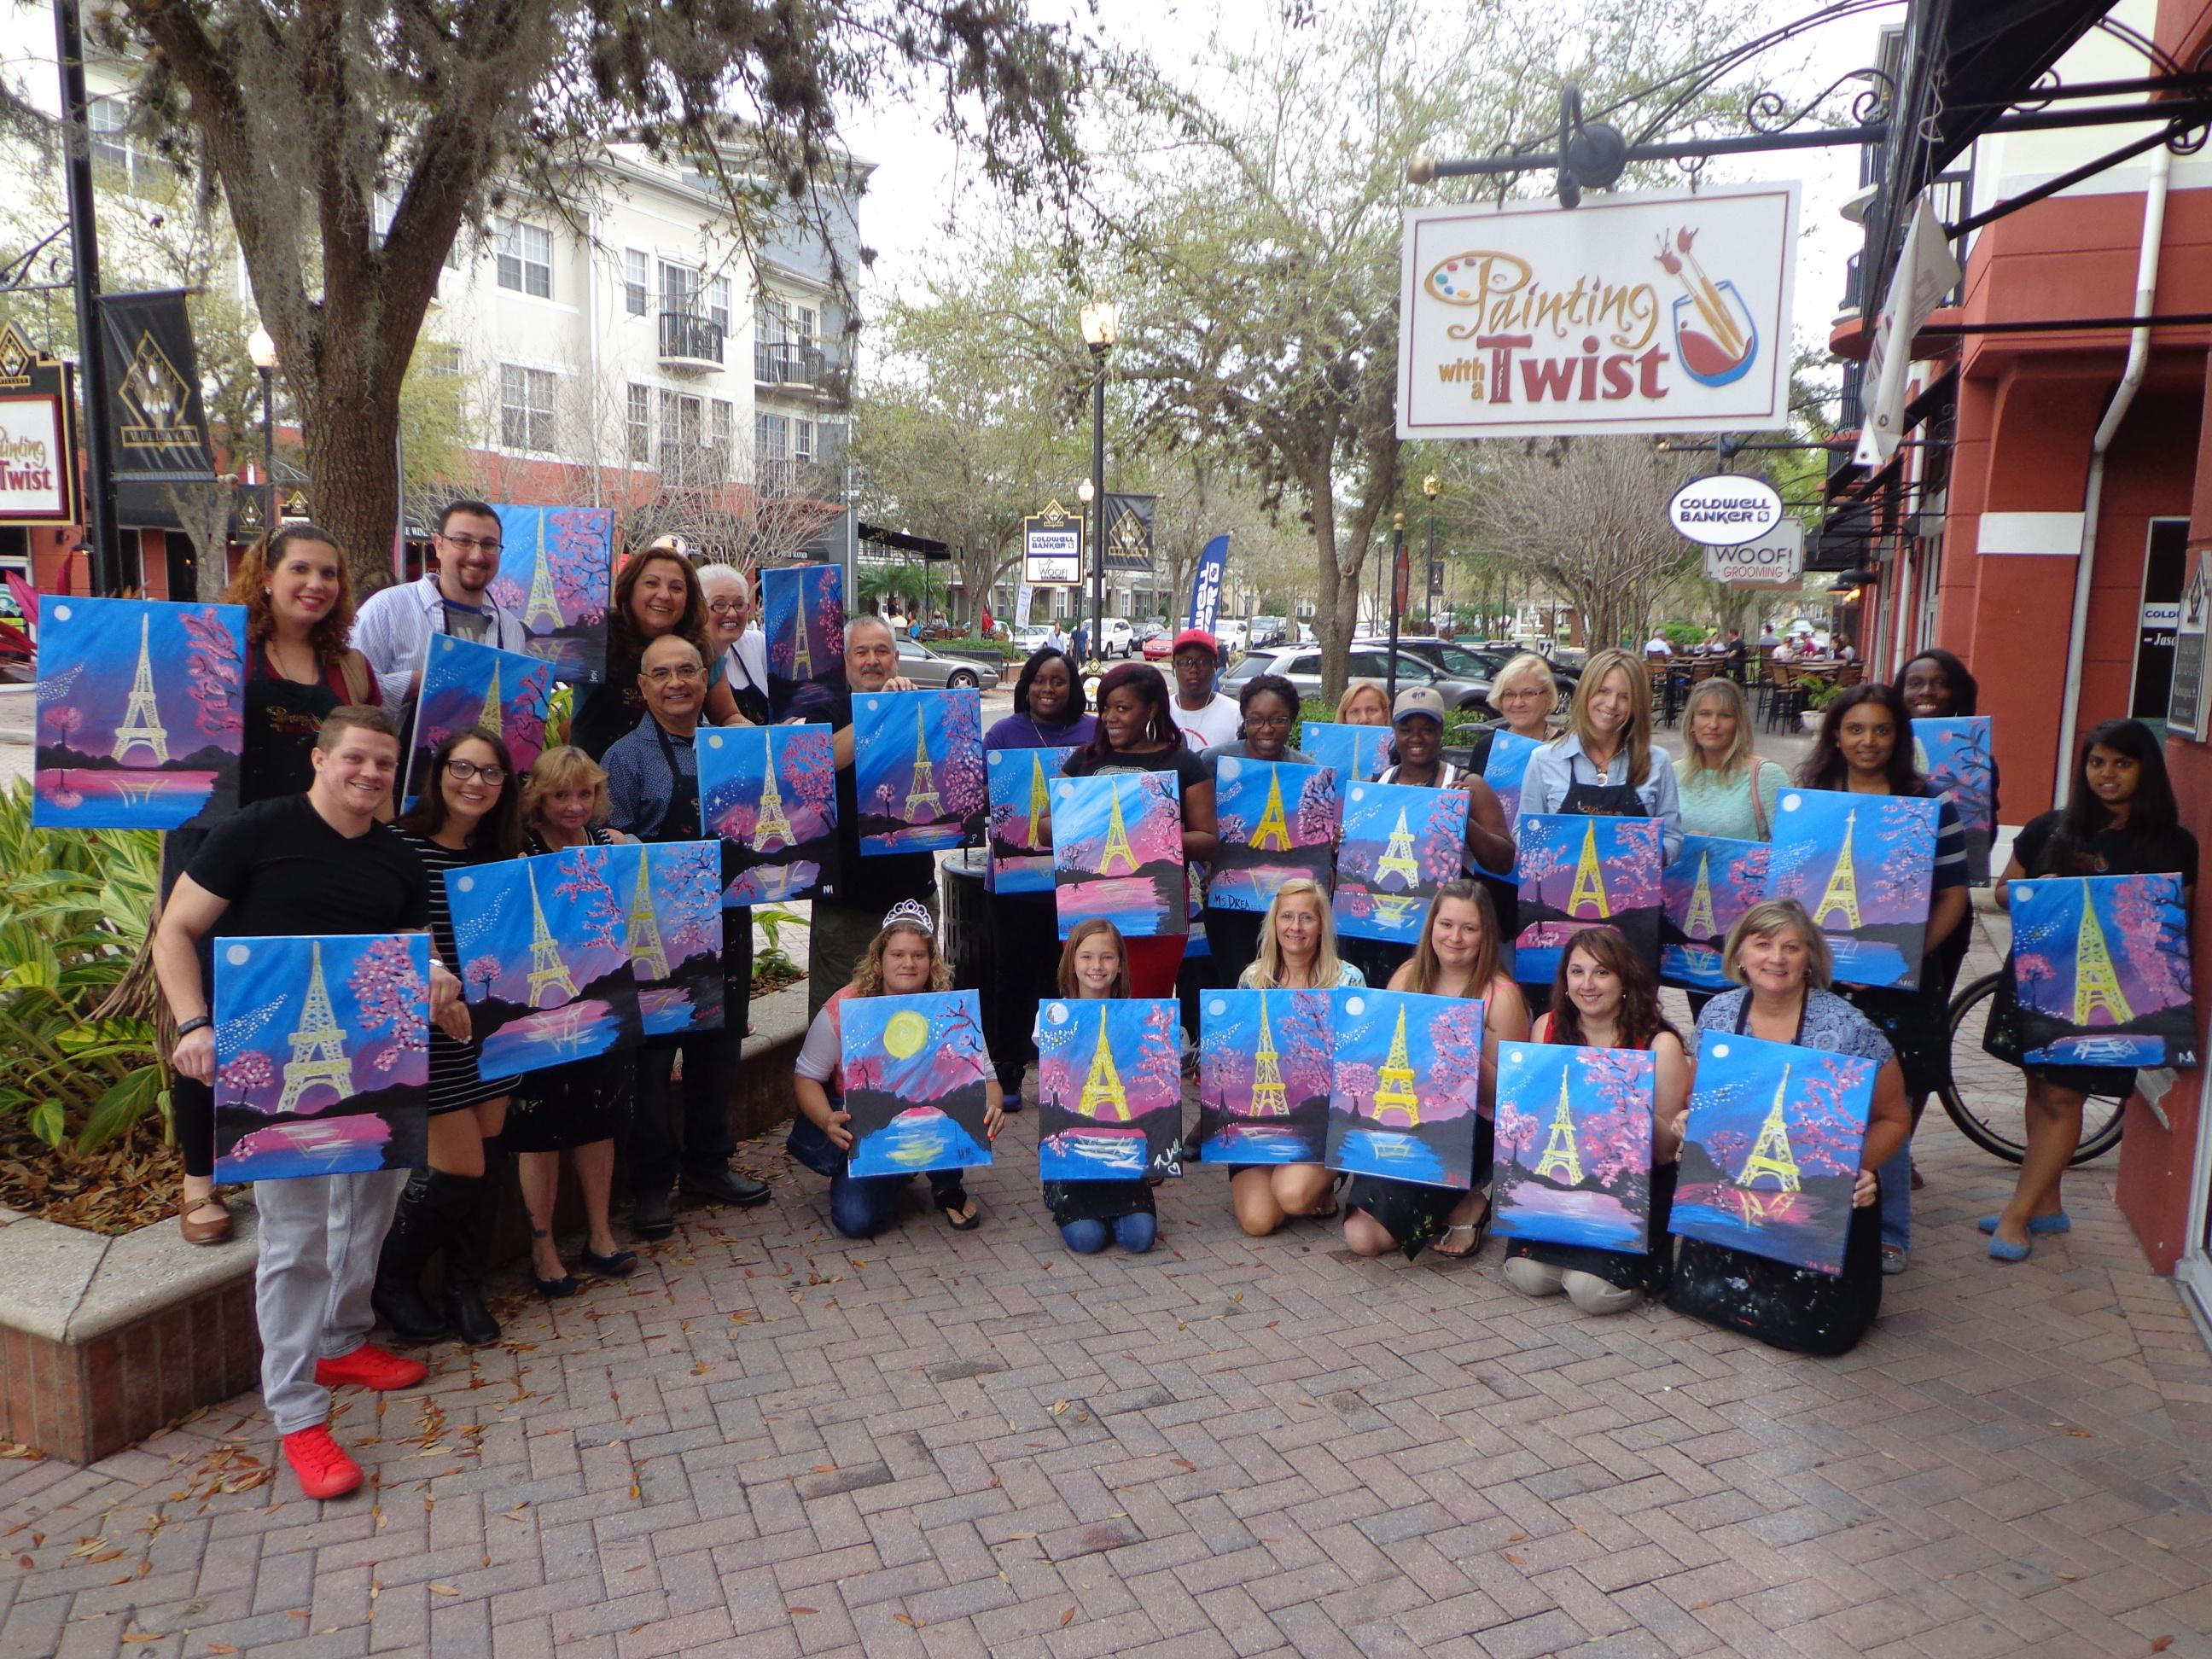 Painting with a twist in tampa fl 33626 for Michaels craft store tampa